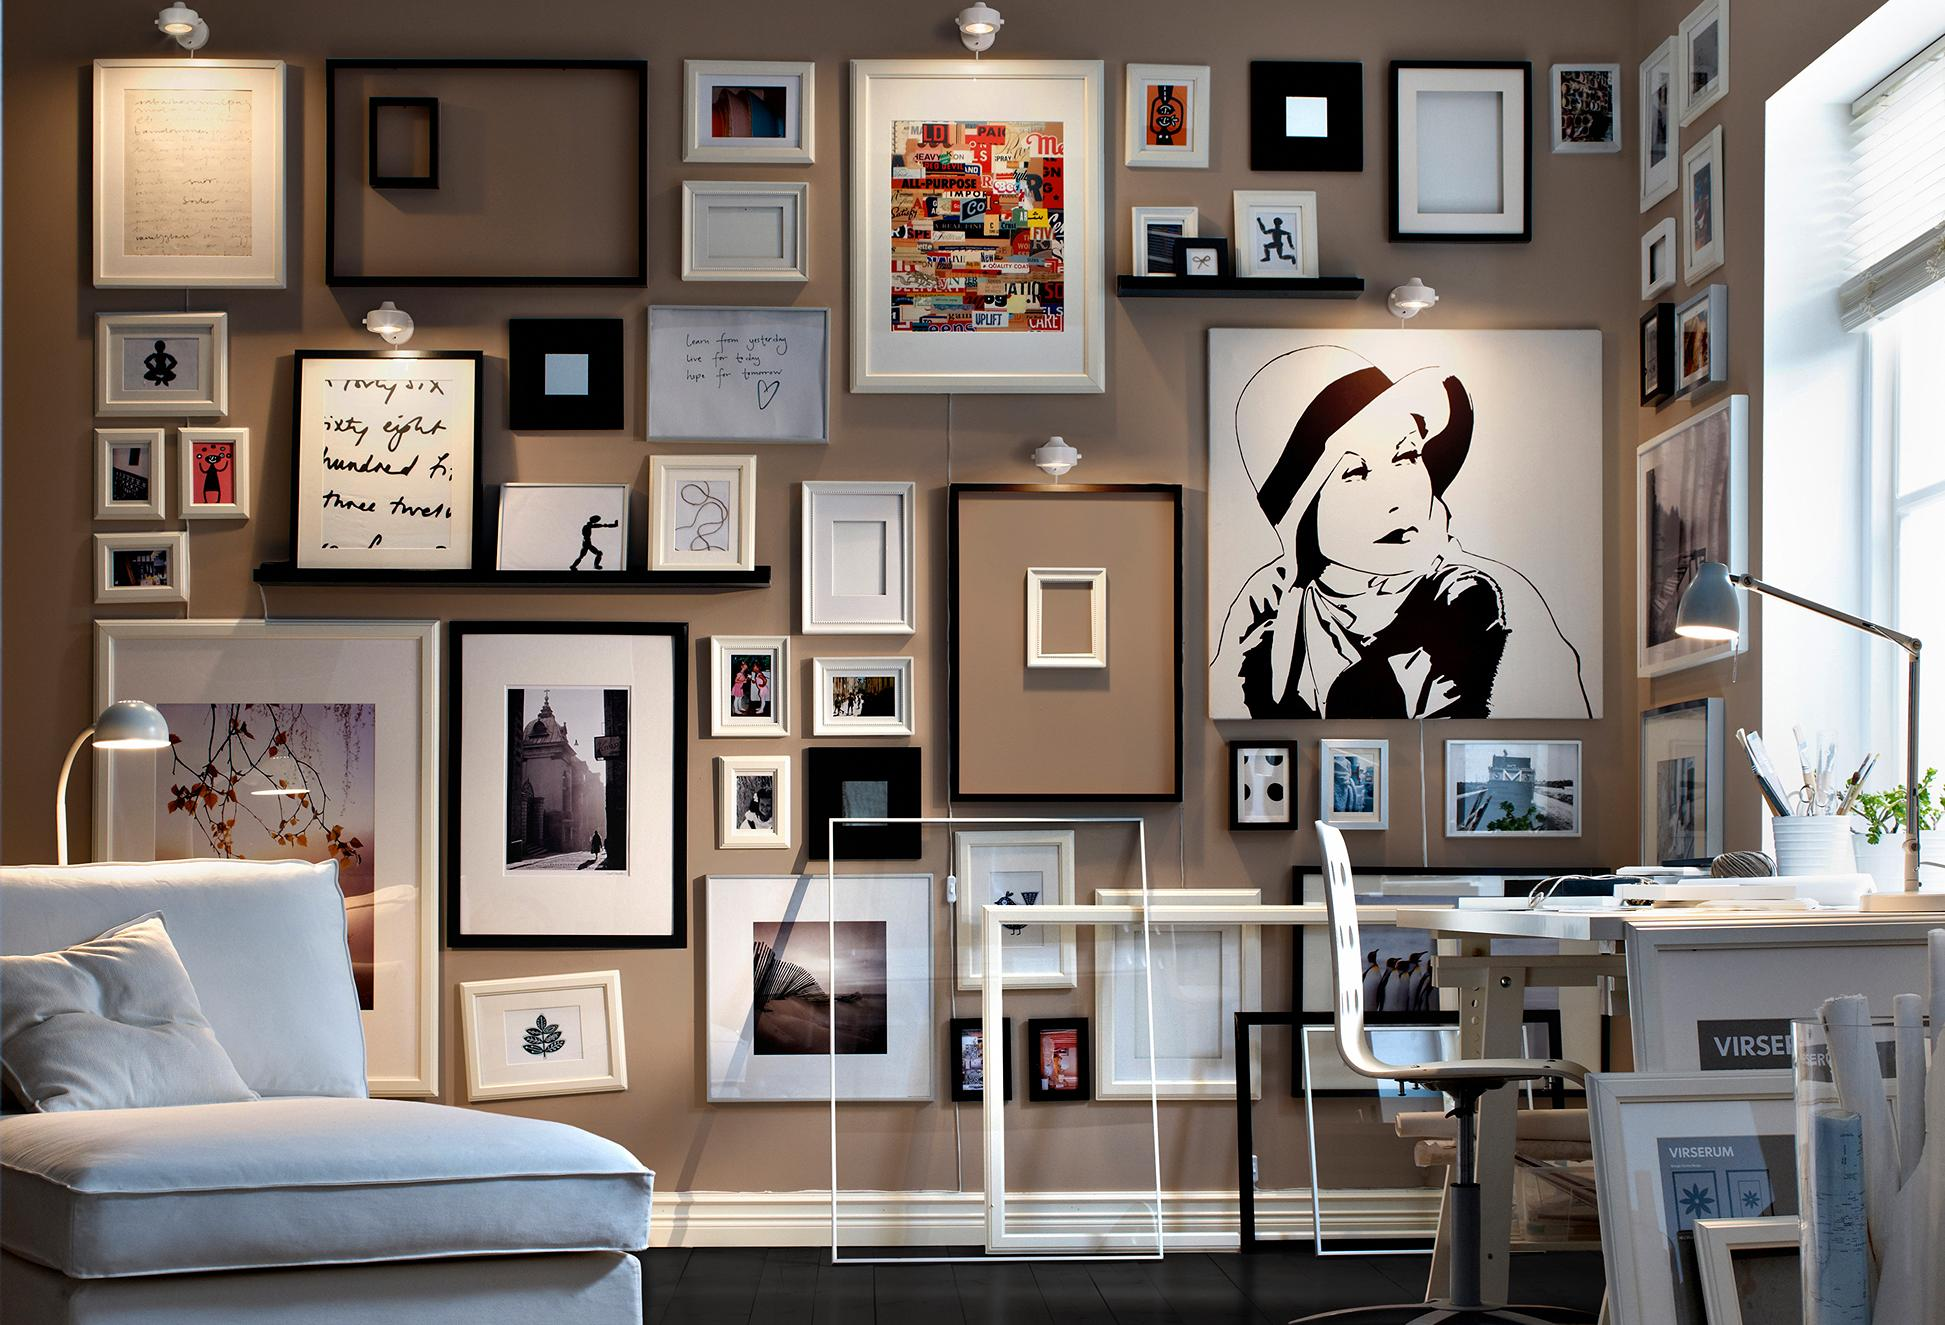 Interior Design Wall Art The Art Of Hanging Art